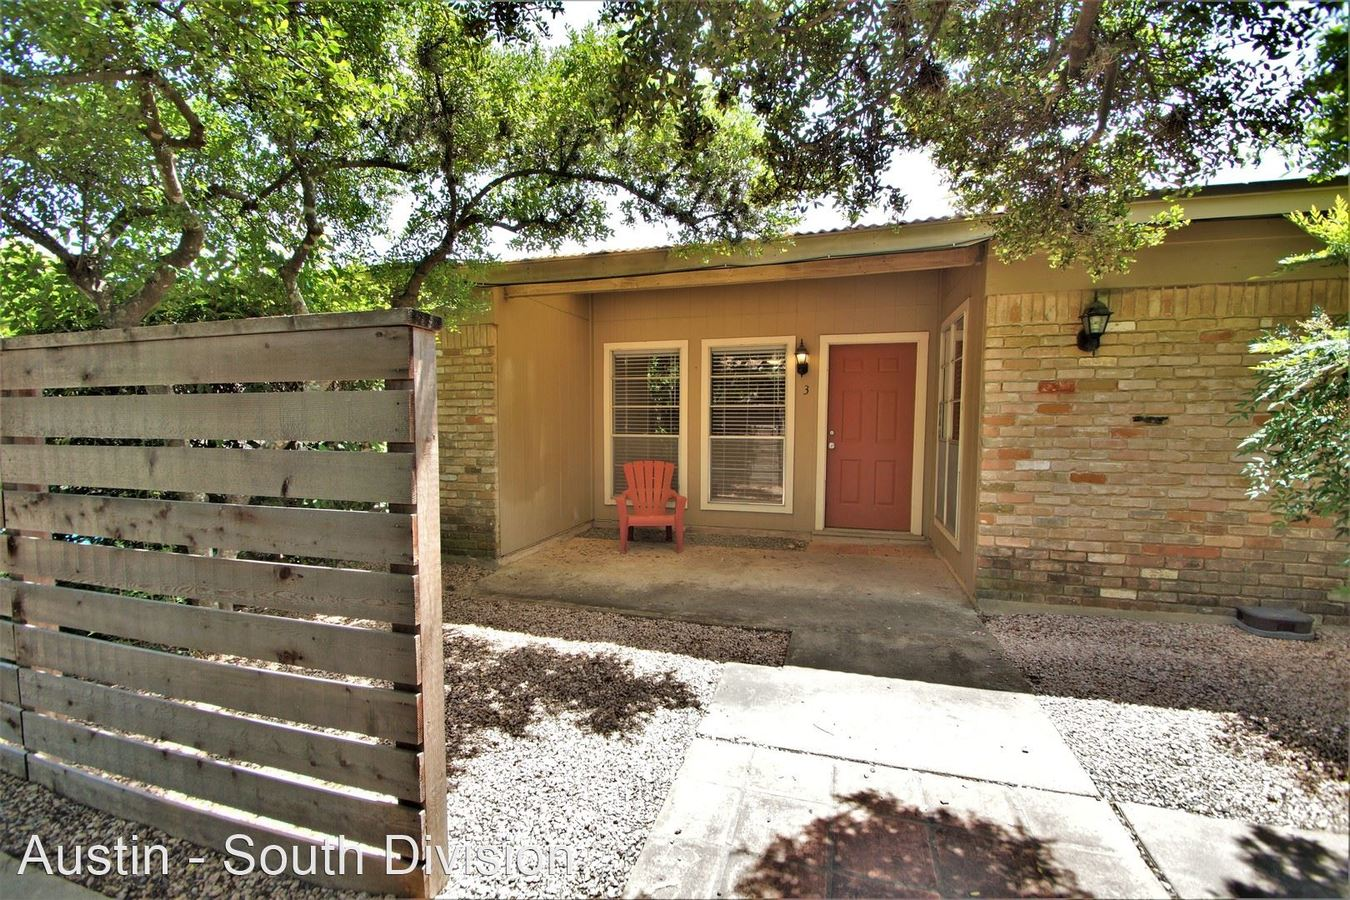 2 Bedrooms 1 Bathroom Apartment for rent at 3414 3436 Willowrun Dr in Austin, TX